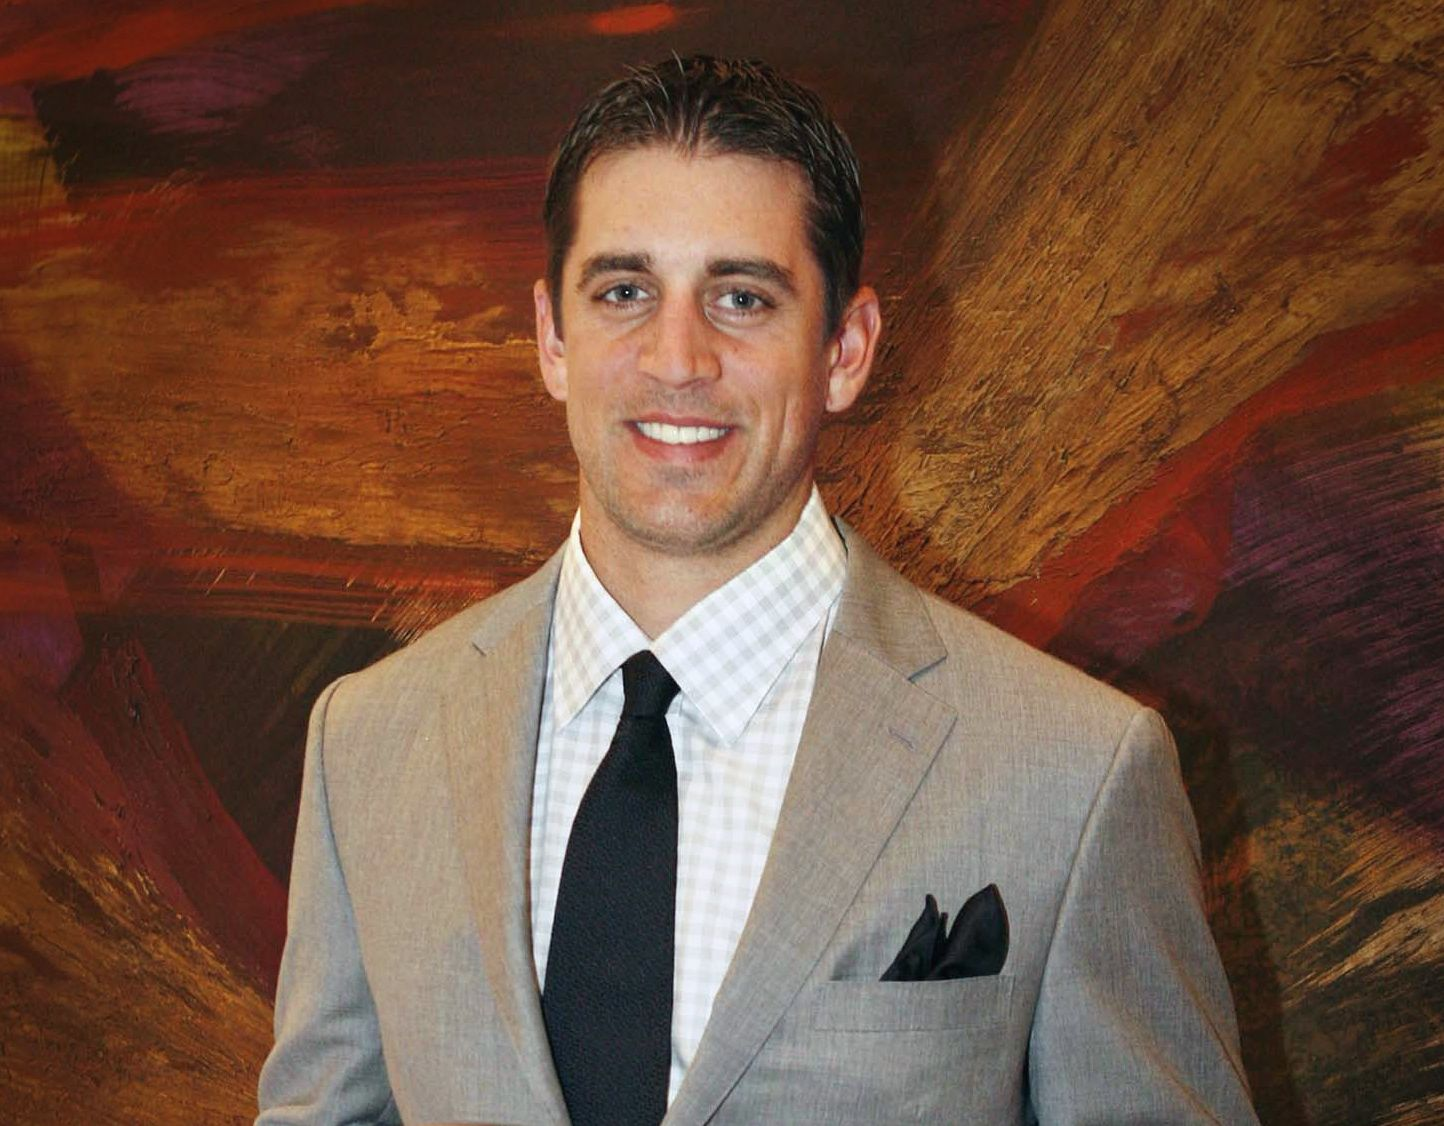 Aaron Rodgers But Only With Short Hair With Long Hair He Is Fug Aaron Rodgers Aaron Rogers Aaron